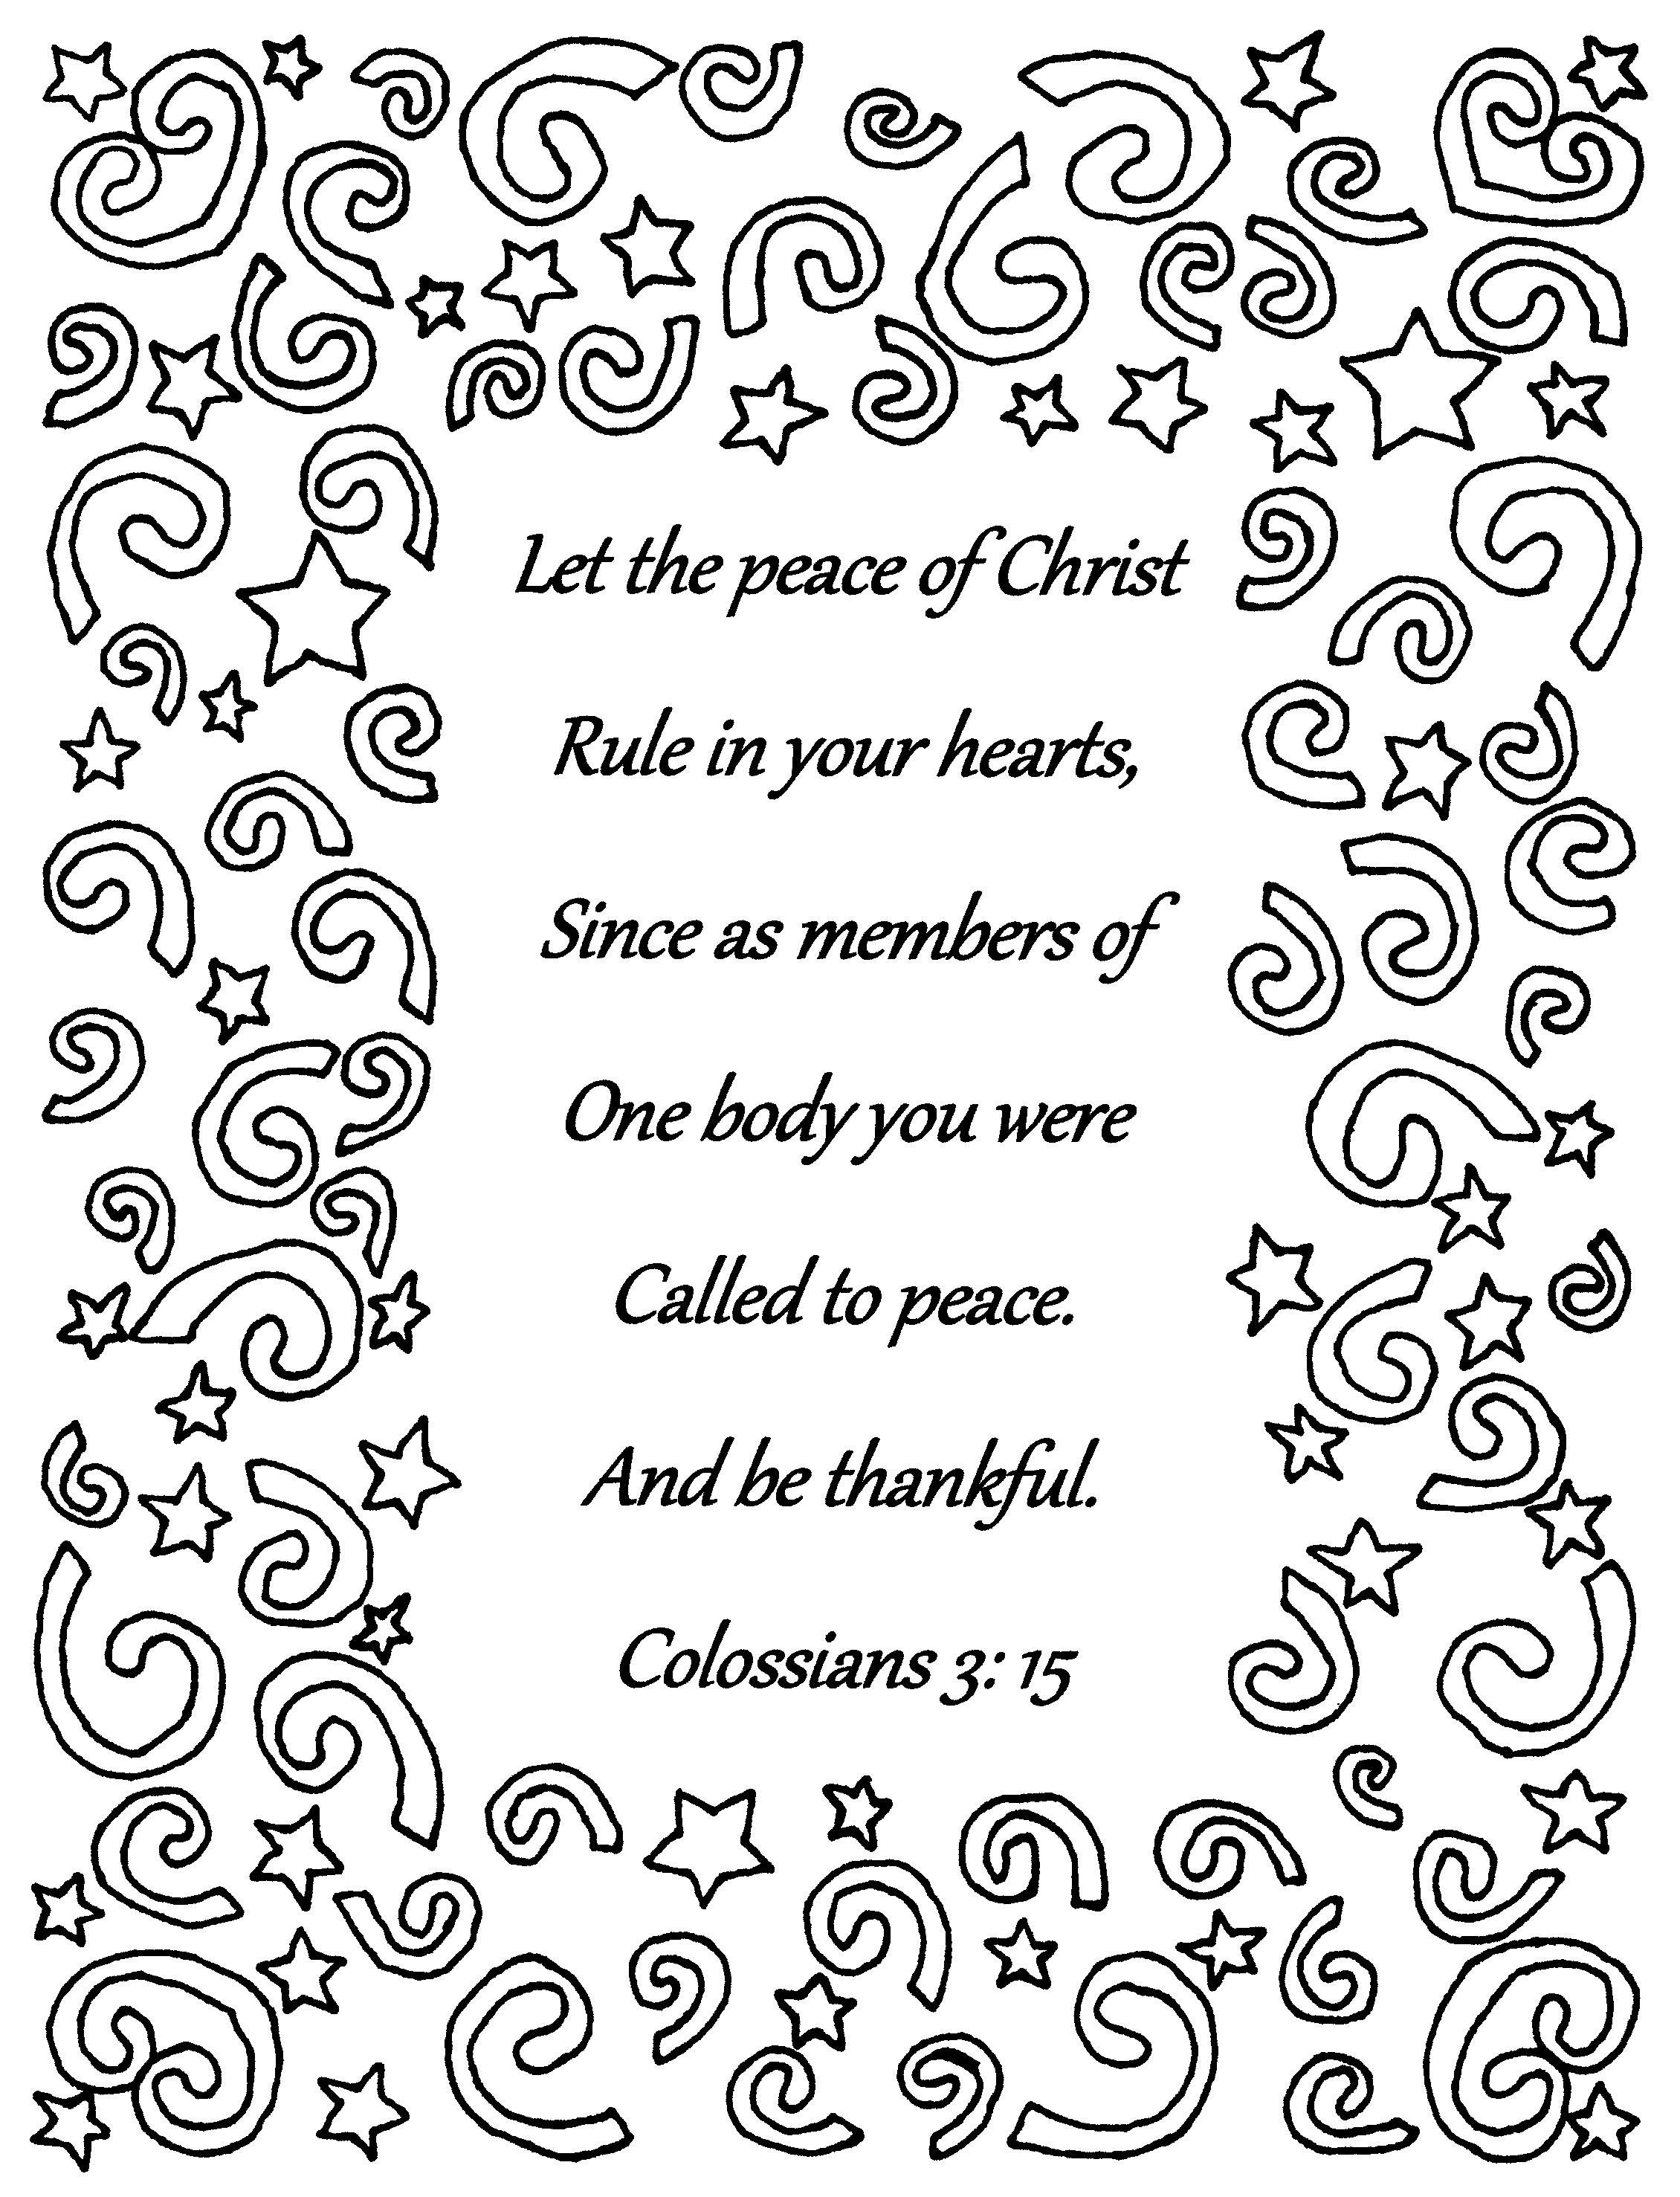 Let The Peace Of Christ Rule Colossians 3 15 Bible Verse